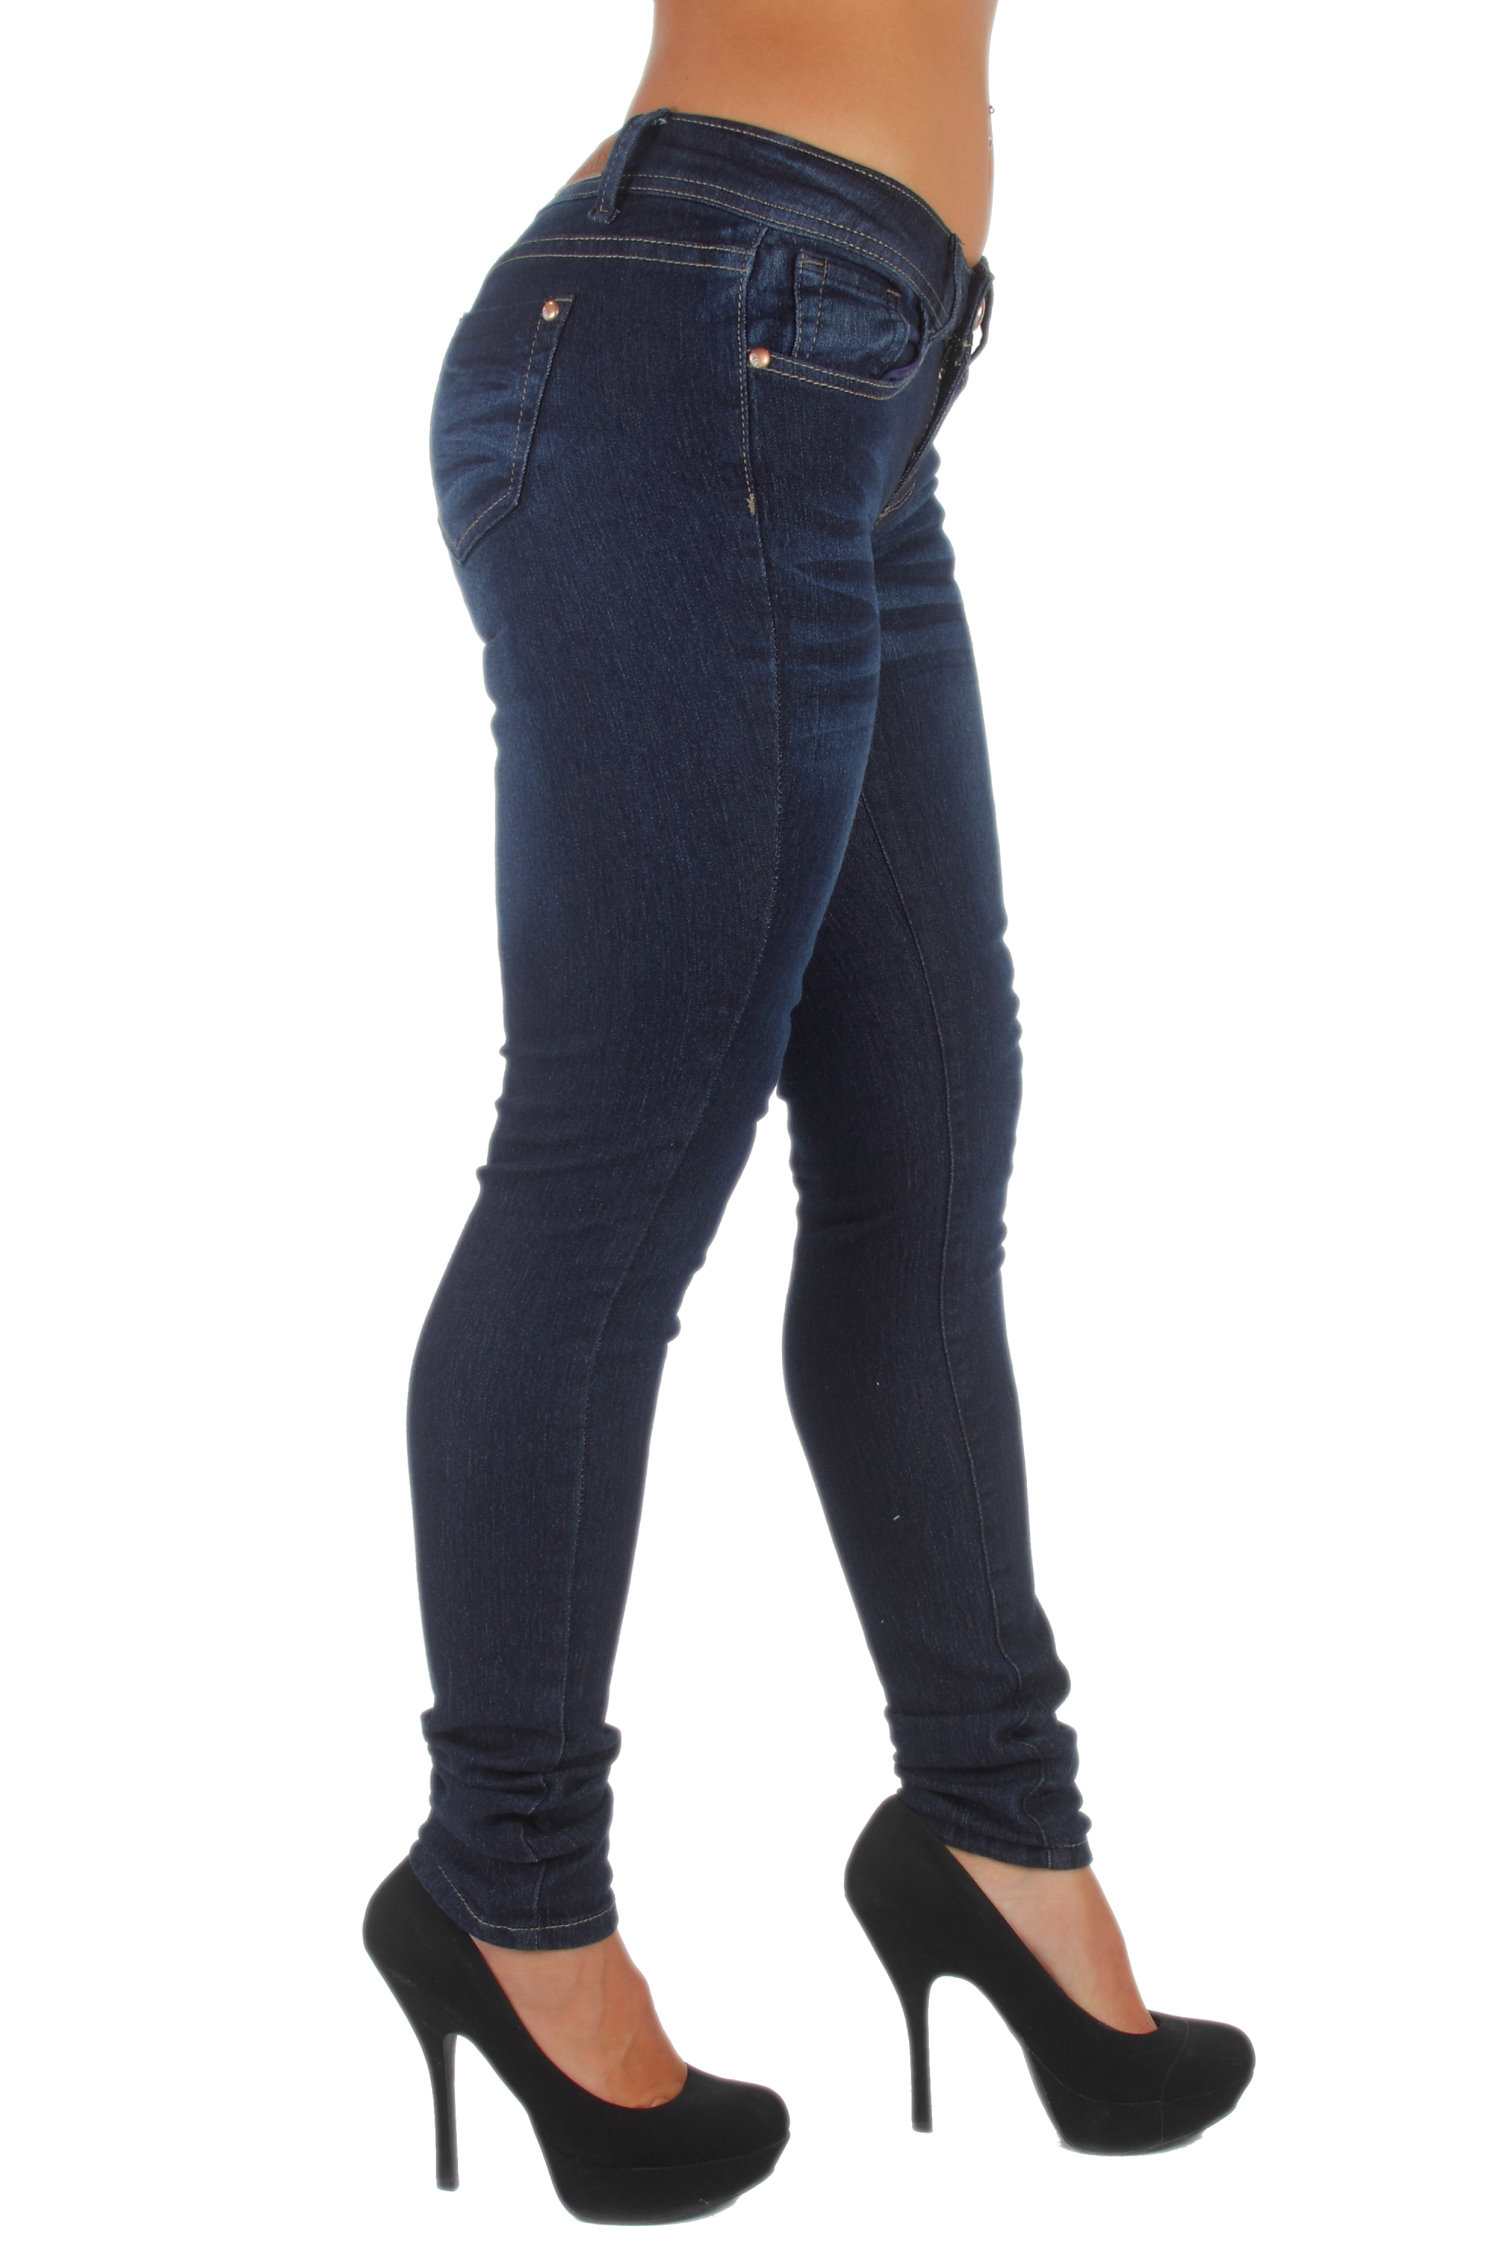 Plus-Size-Classic-5-Pockets-Washed-Skinny-Jeans thumbnail 11